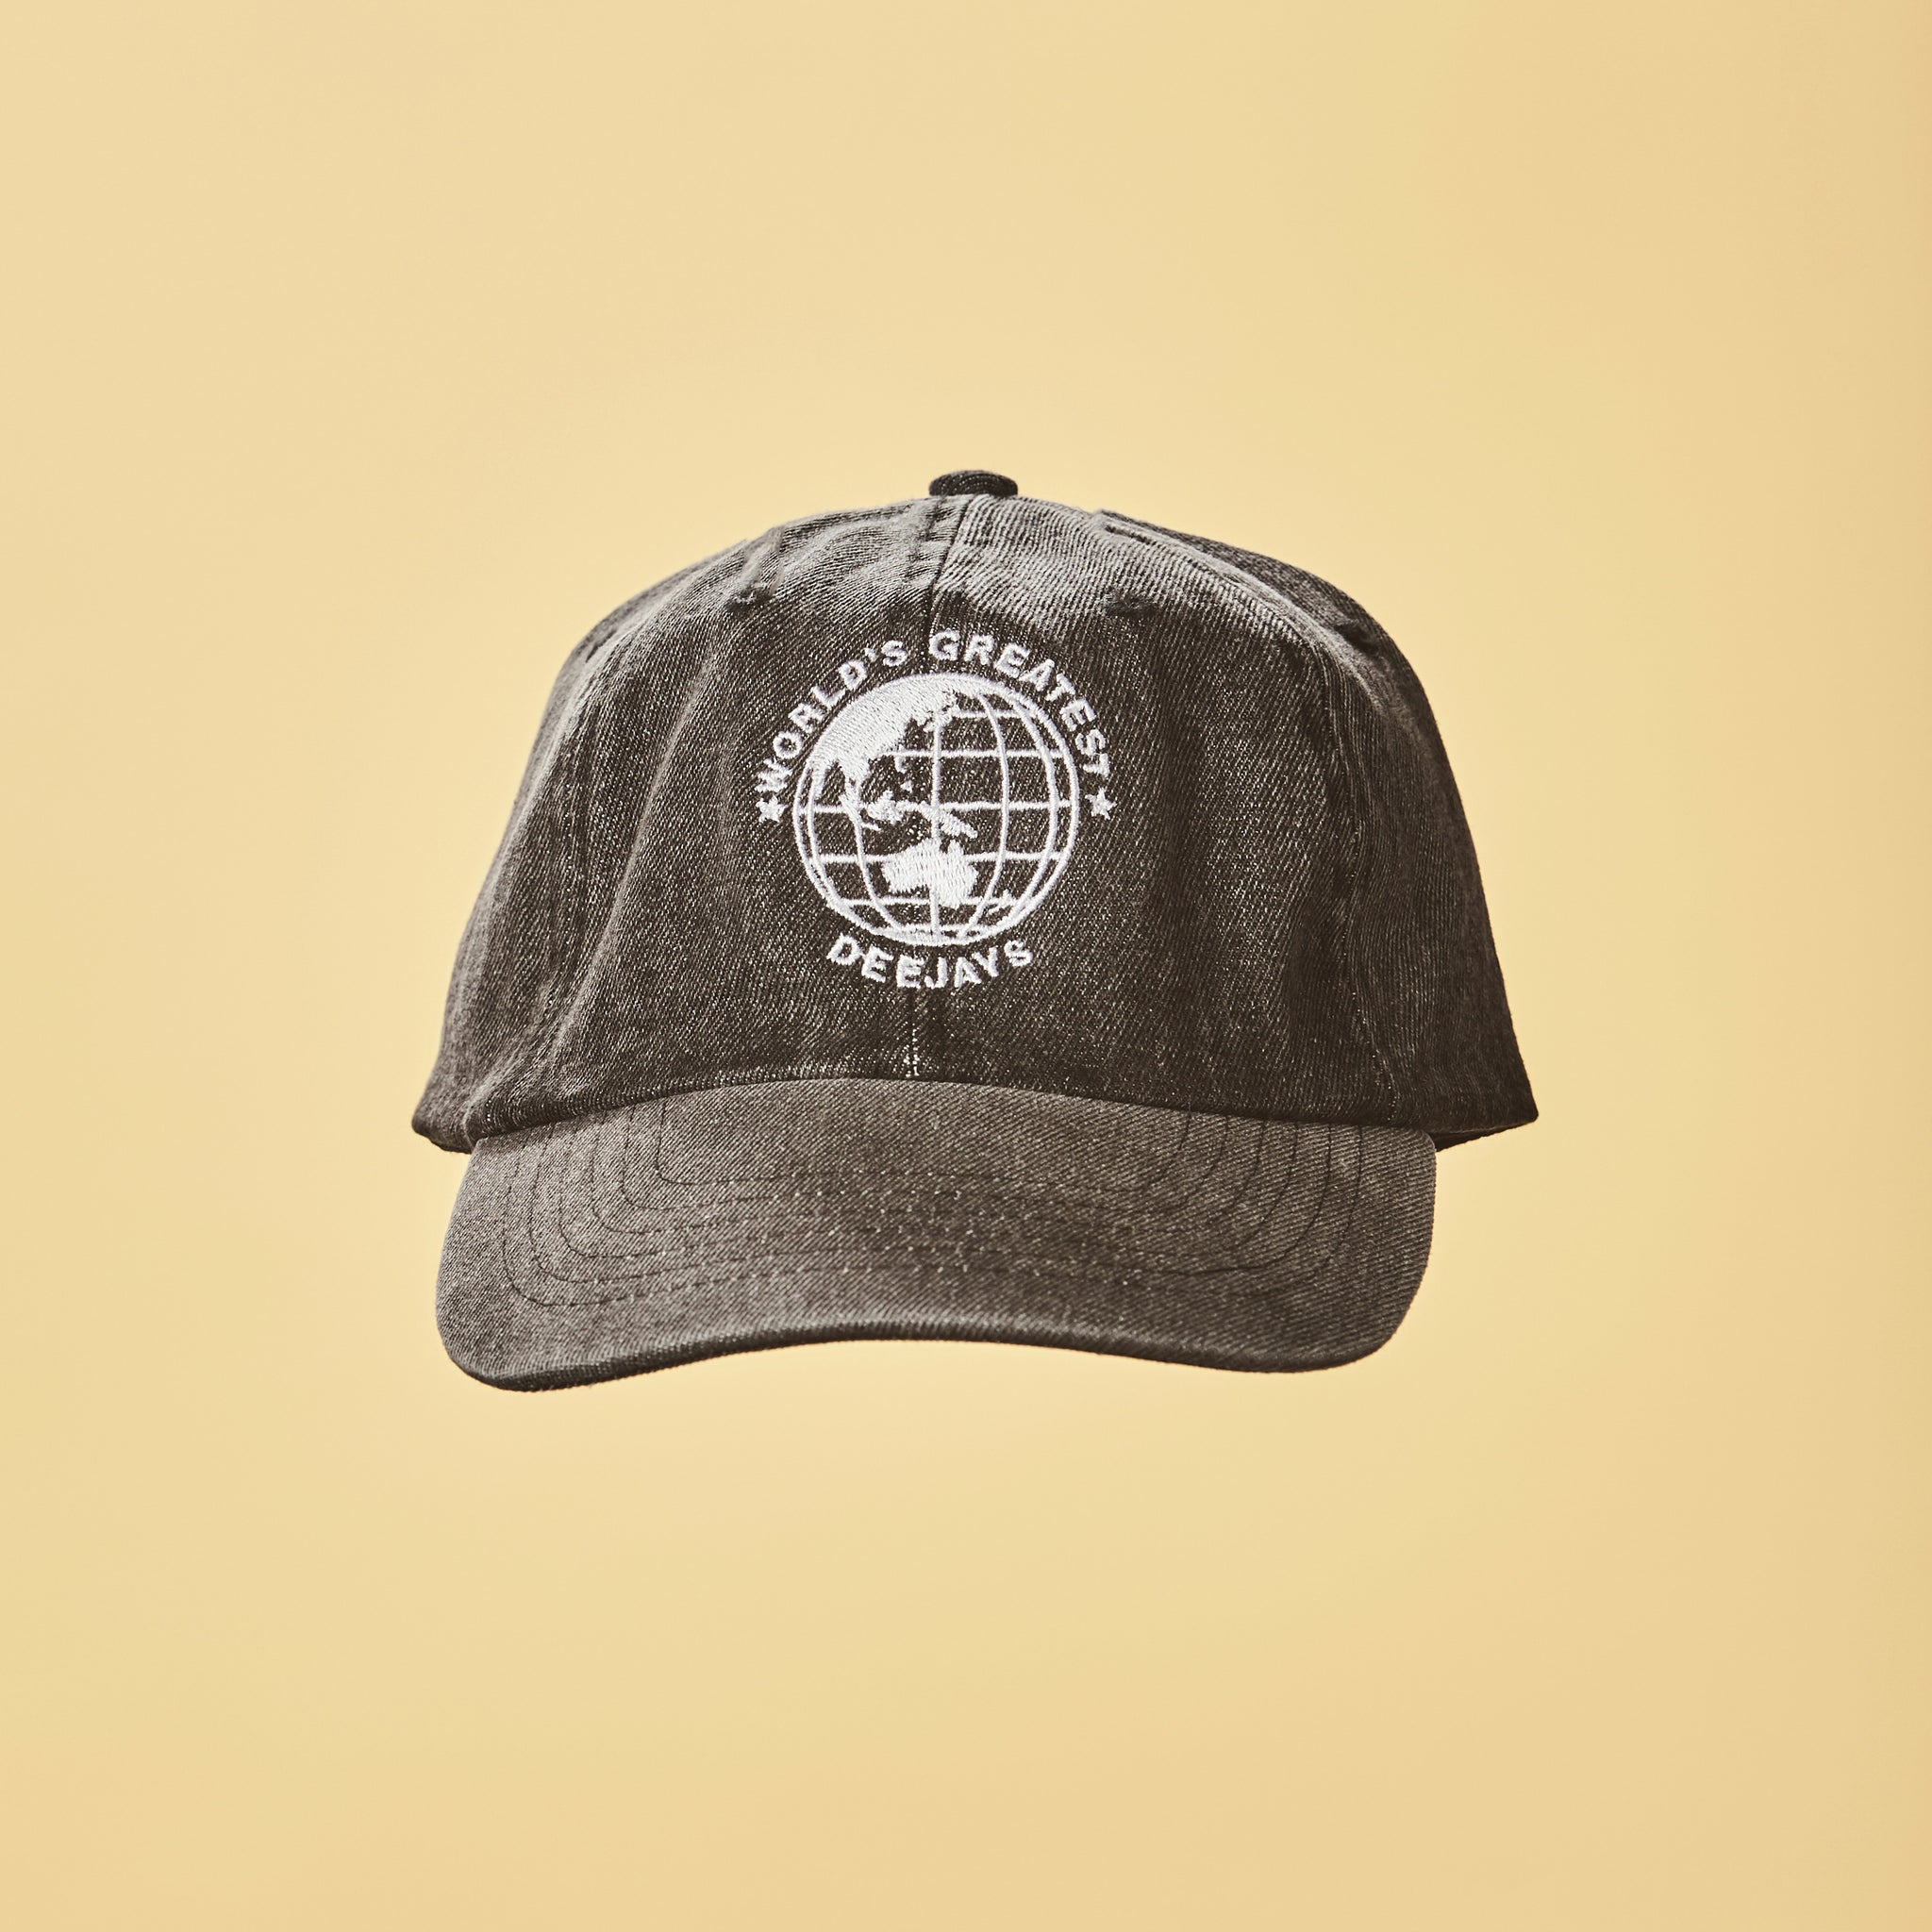 World's Greatest Deejays Hat - Grey Denim